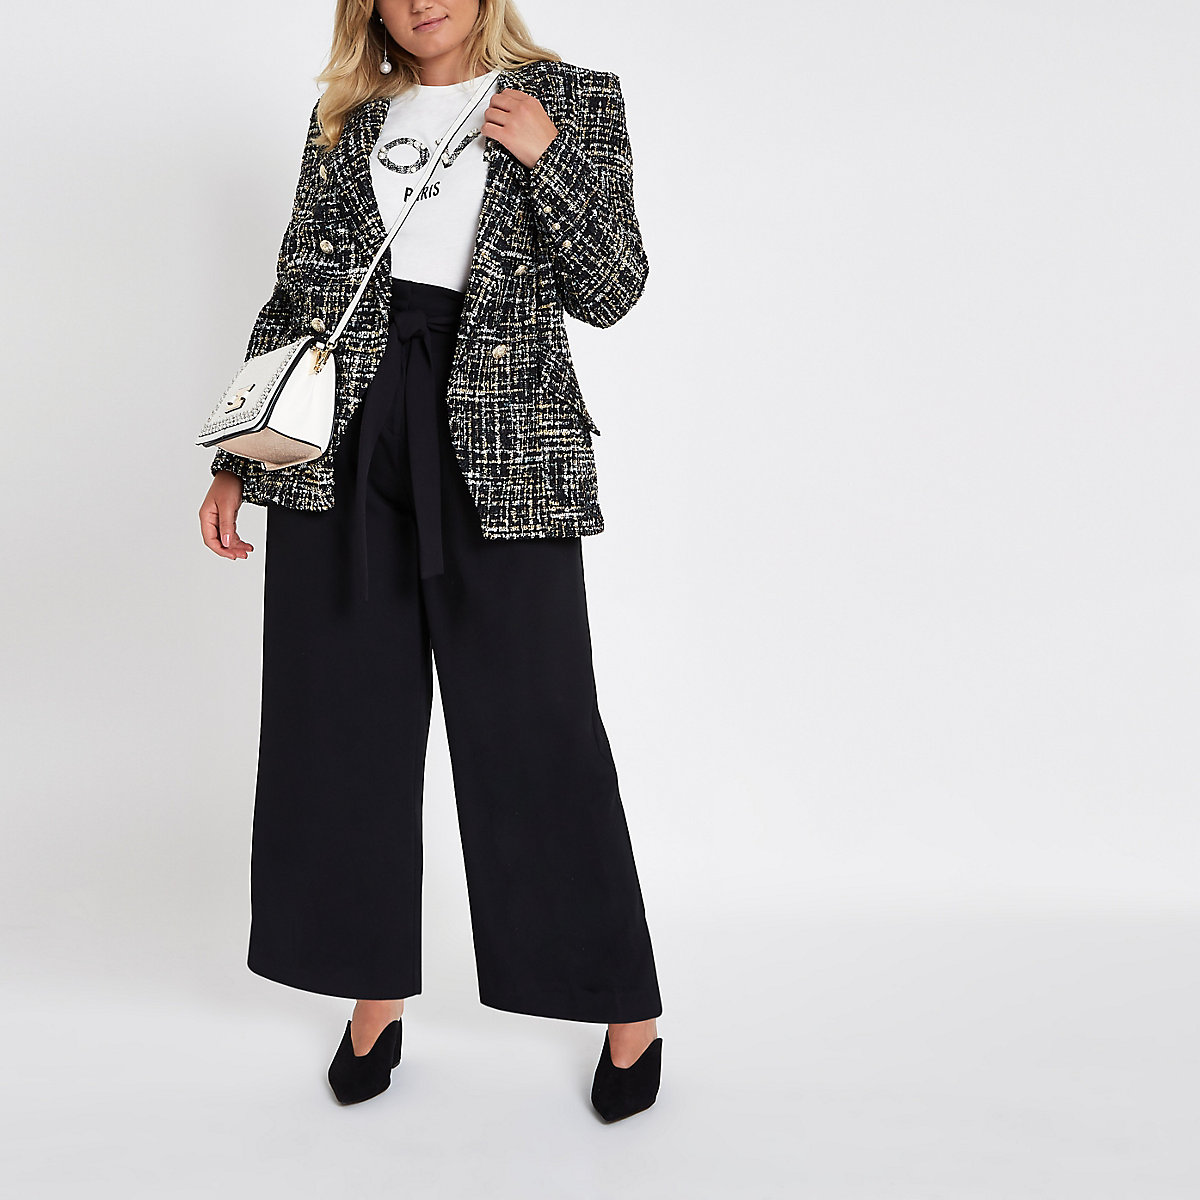 Plus black paperbag wide leg pants